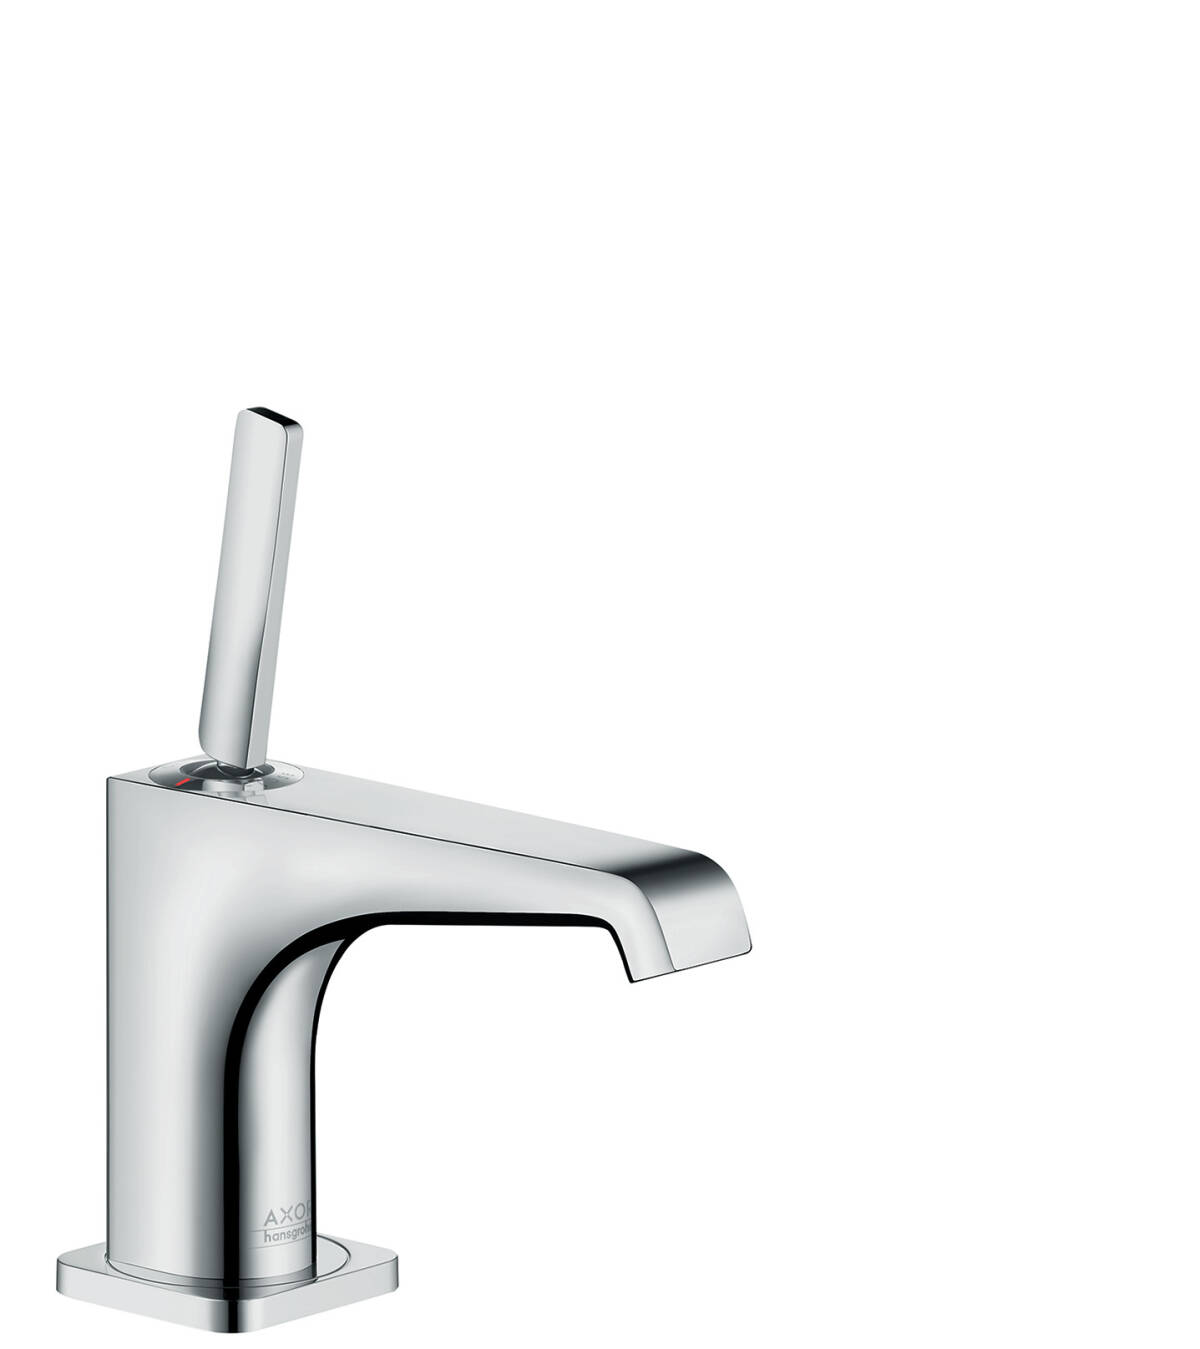 Single lever basin mixer 90 with pin handle for hand washbasins with waste set, Brushed Nickel, 36102820